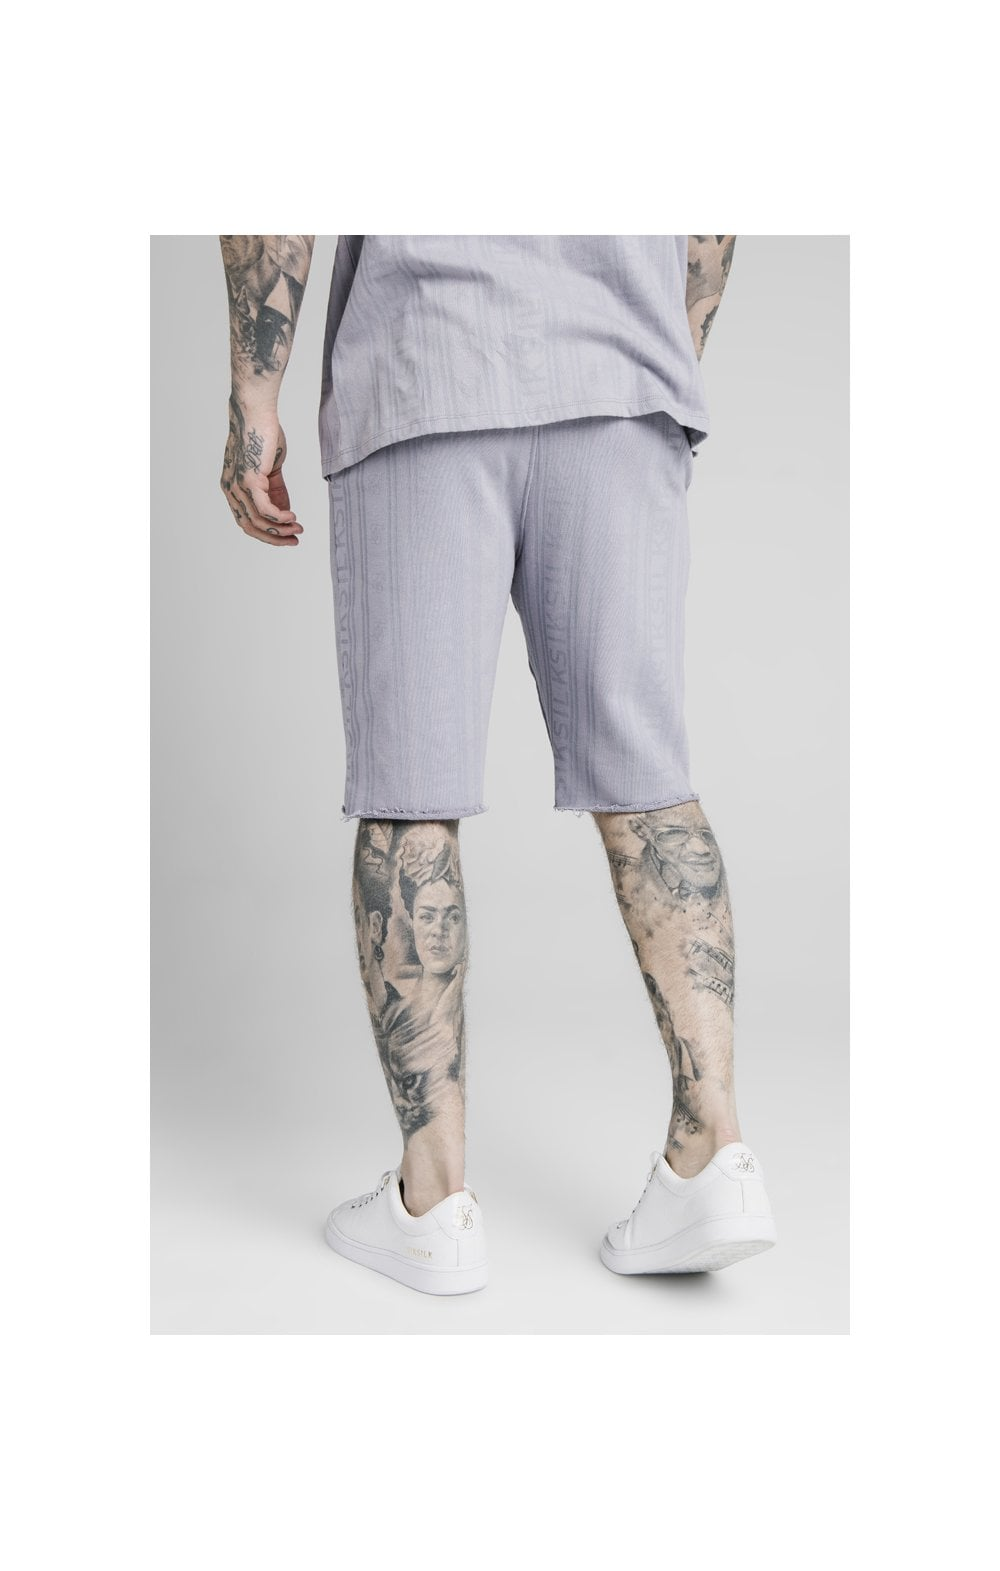 Load image into Gallery viewer, SikSilk Pastel Gym Shorts - Grey (1)